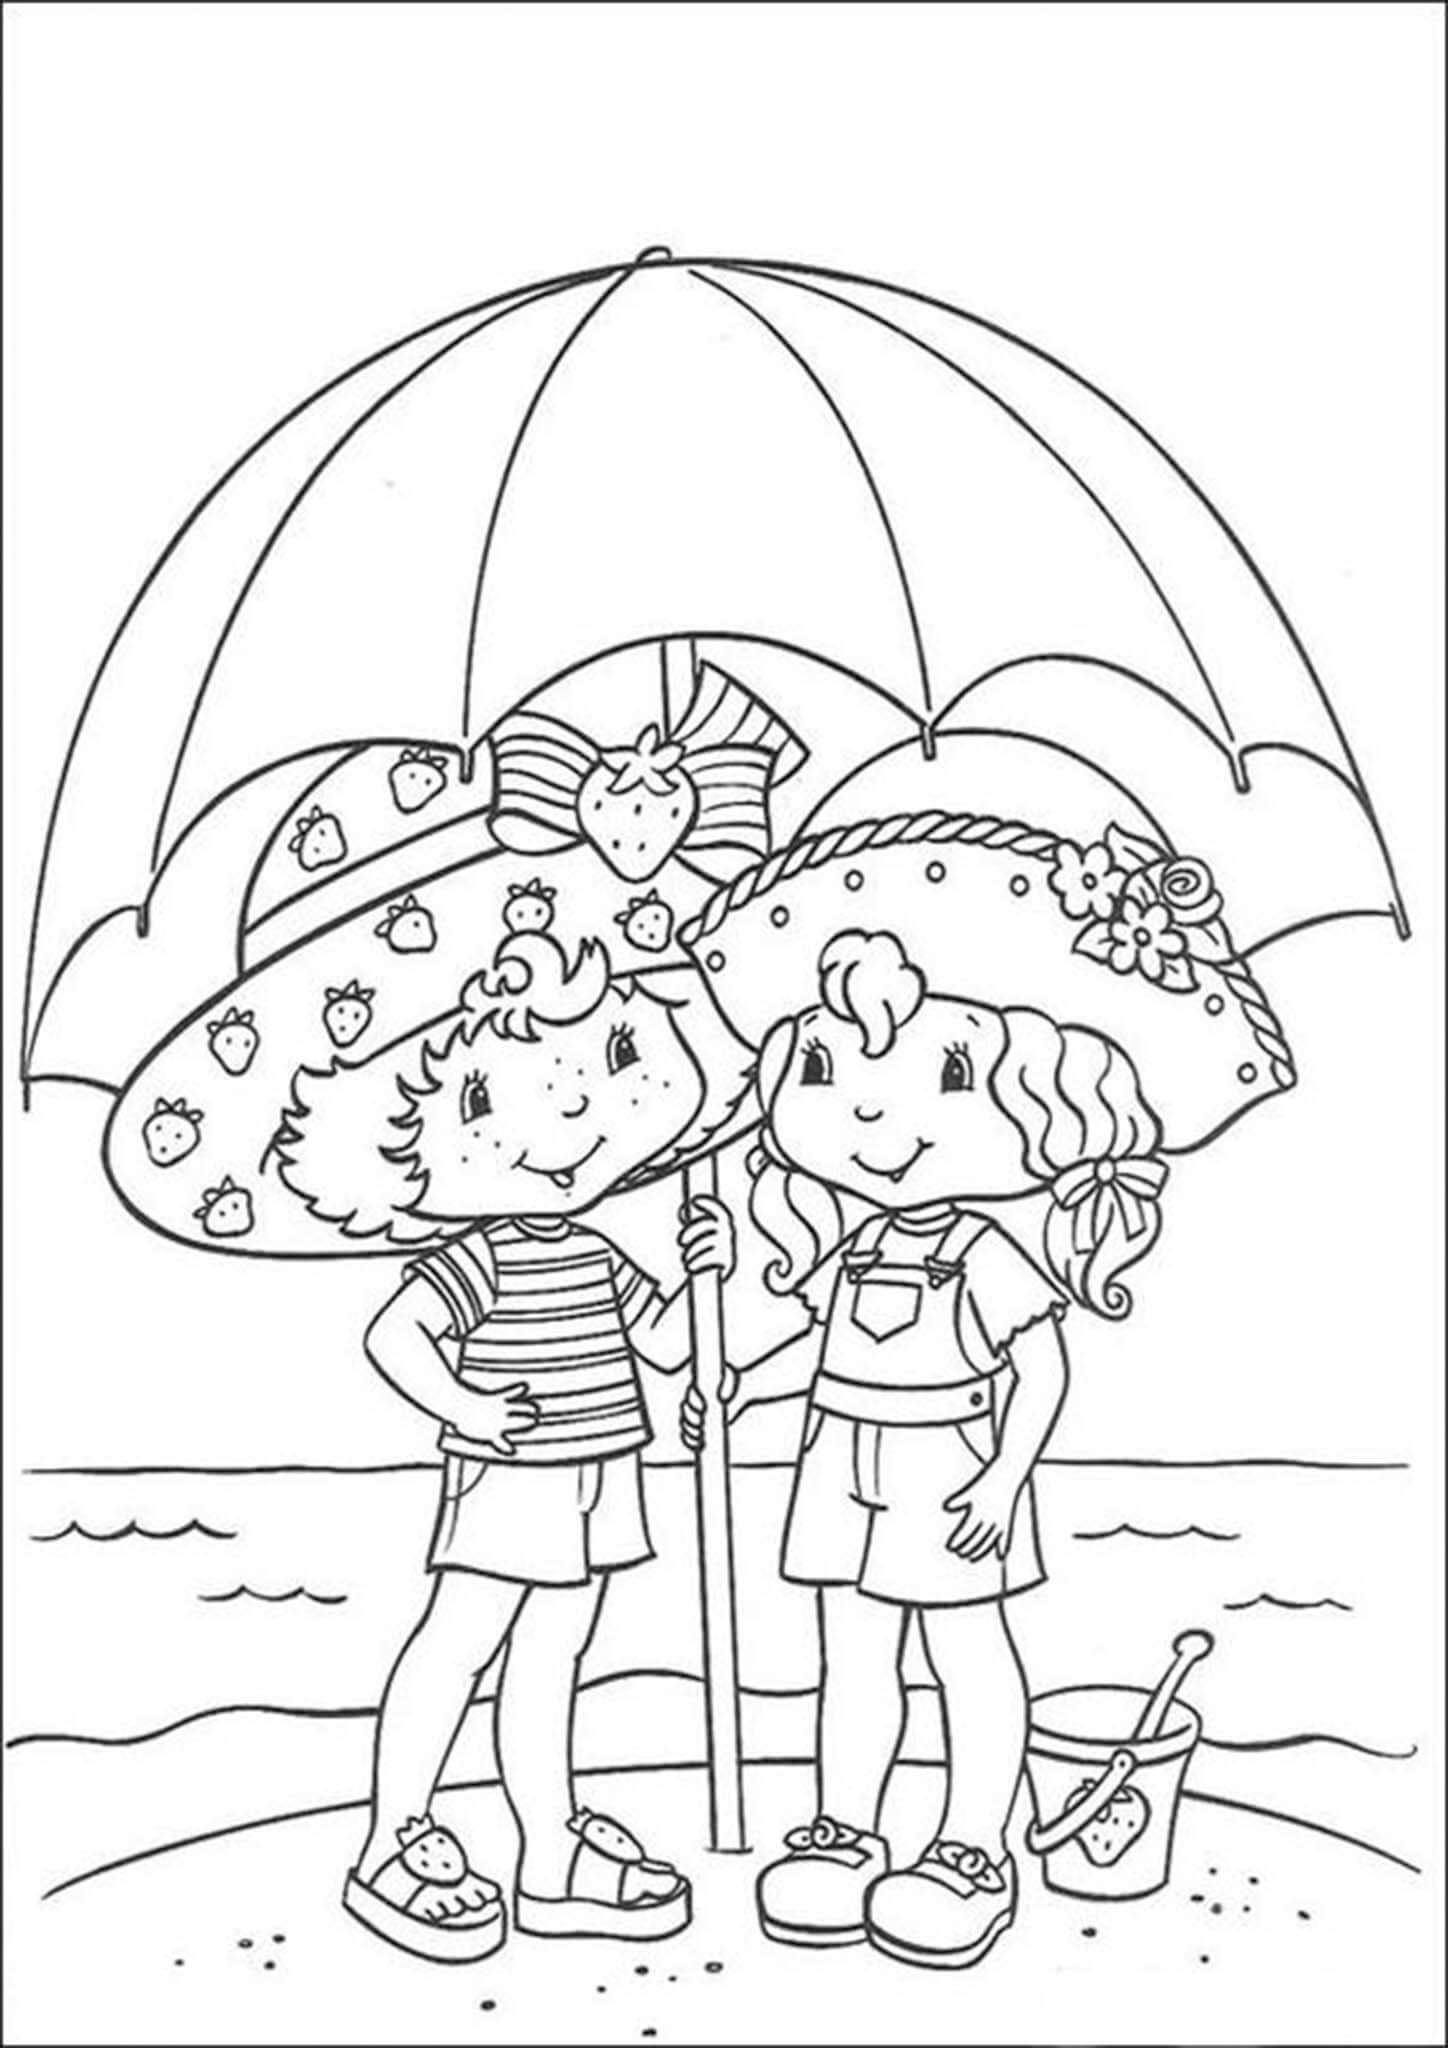 strawberry shortcake coloring games free printable strawberry shortcake coloring page 05 games coloring strawberry shortcake